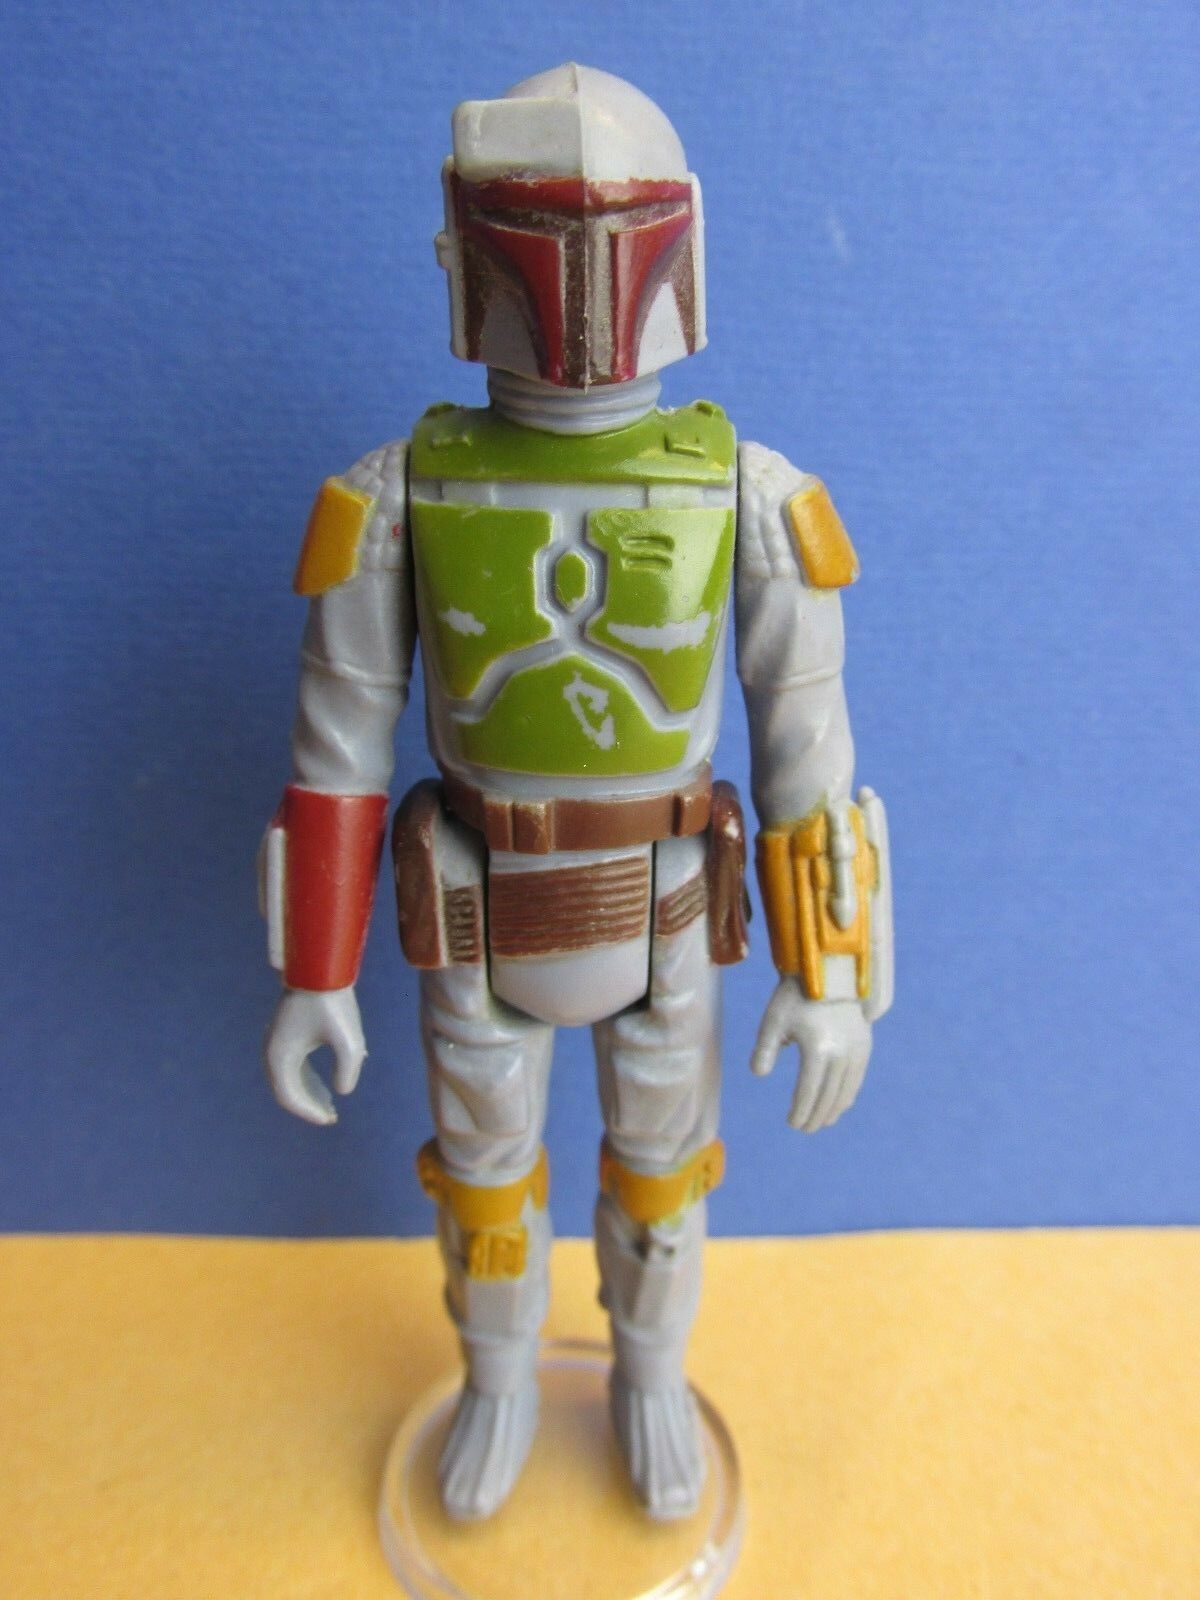 ORIGINAL vintage star wars BOBA FETT ACTION FIGURE kenner bounty hunter HK 80J